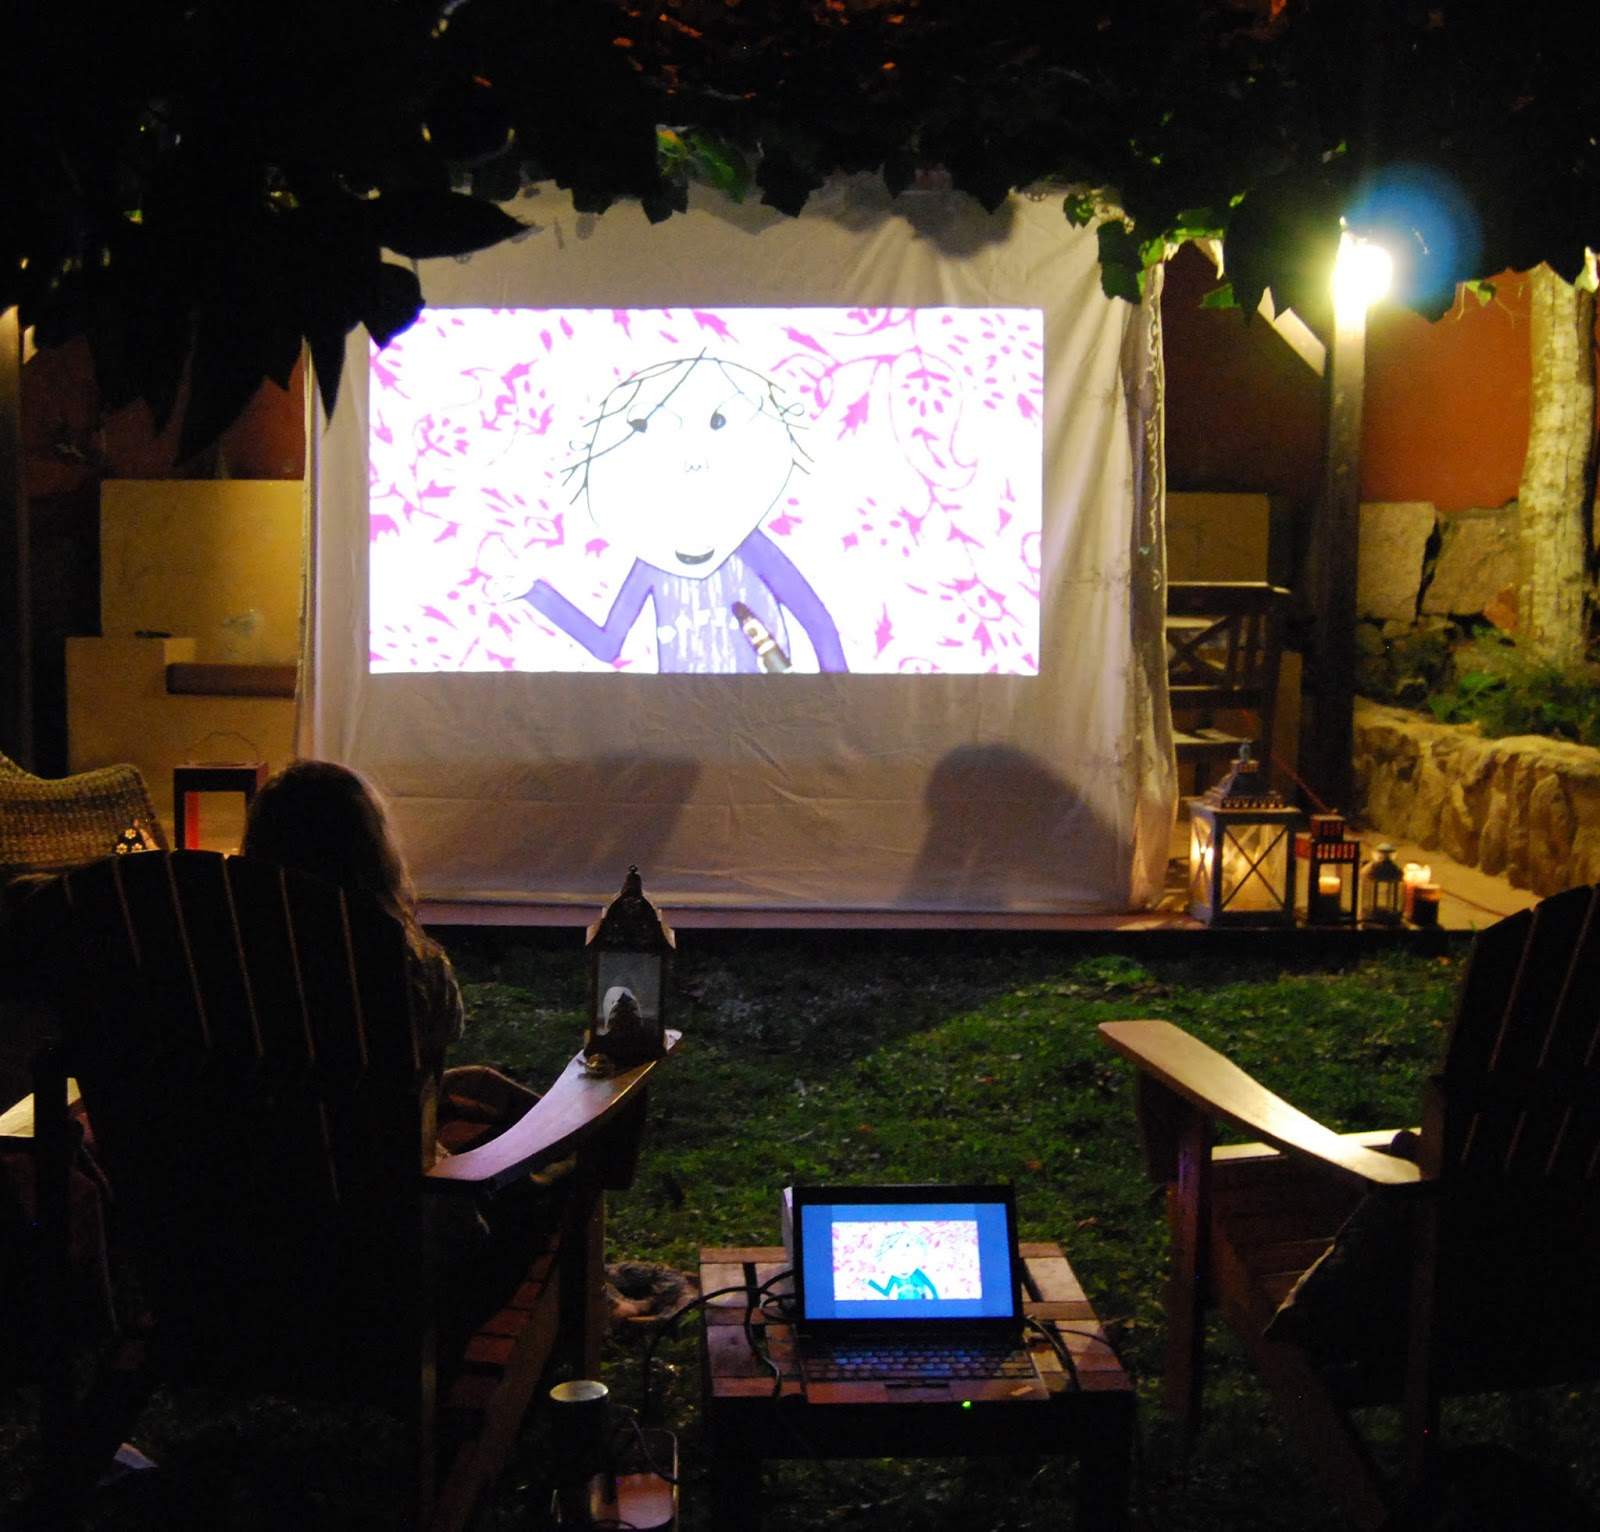 Cine de verano en casa. Movie night outdoors